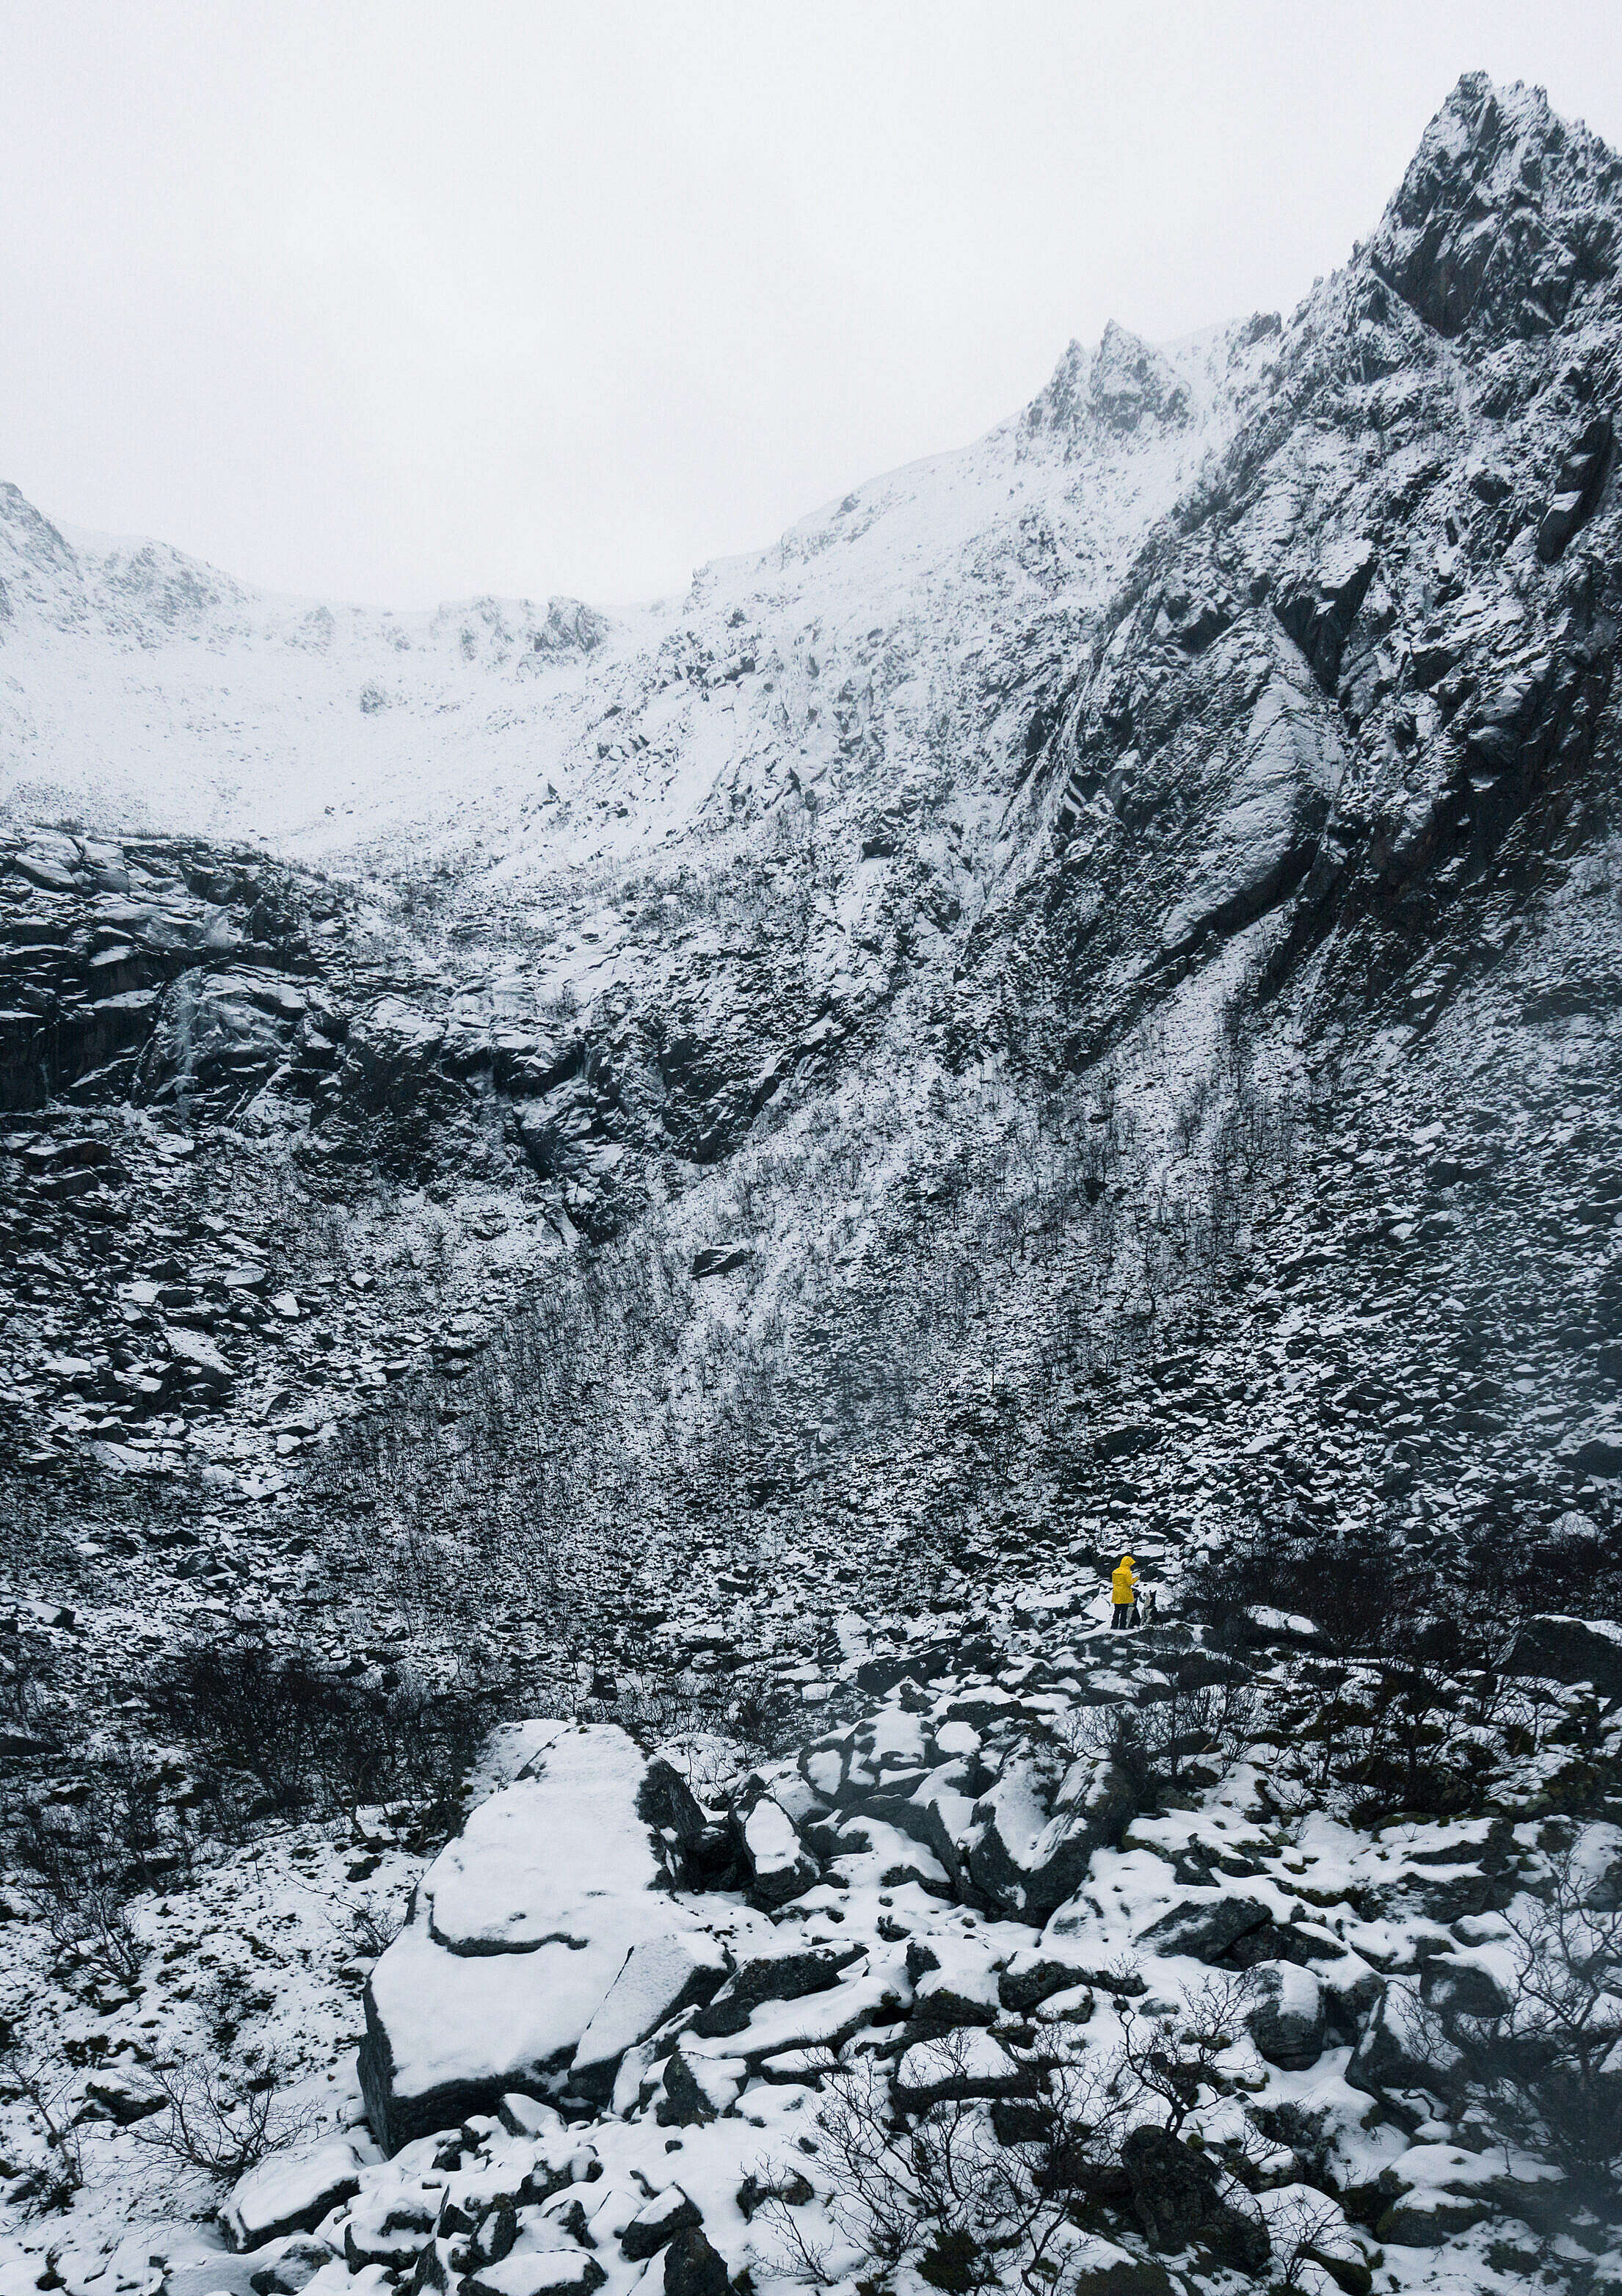 Tiny Person in Yellow Jacket Standing between Rocks Covered by Snow Free Stock Photo